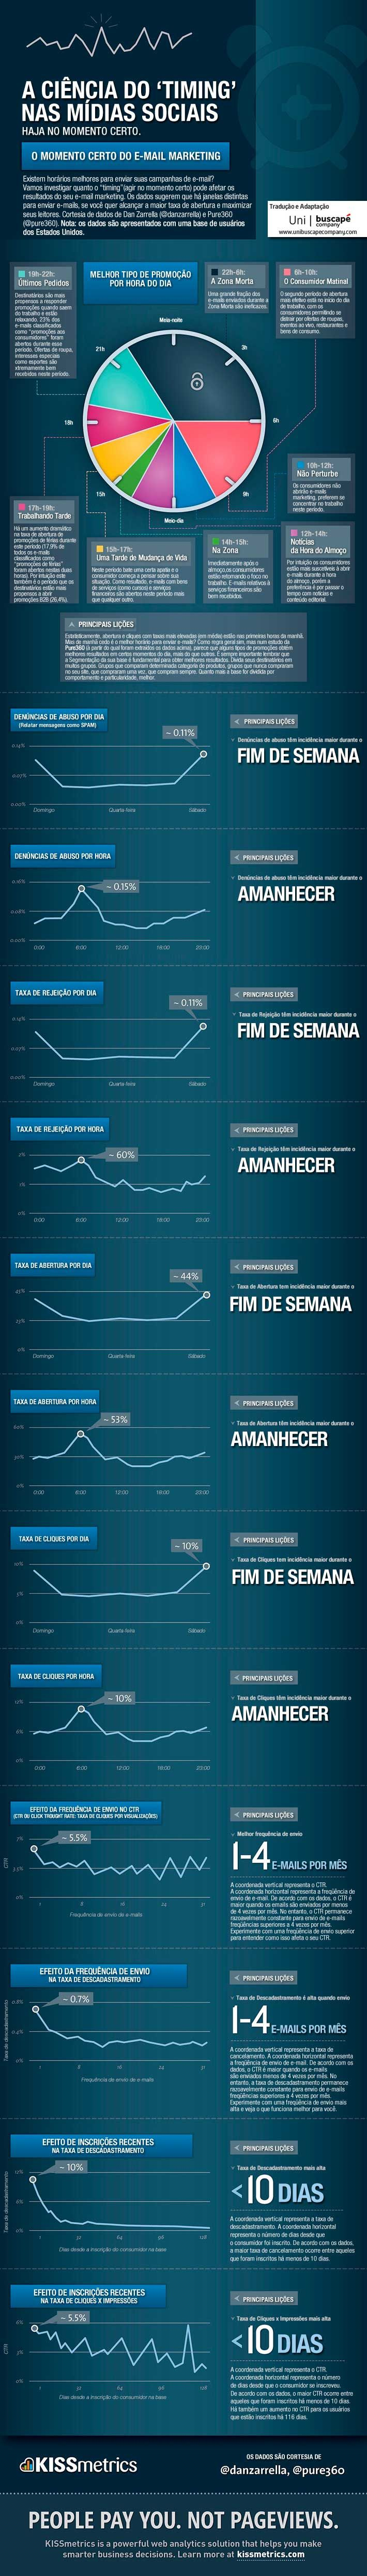 infografico-email-marketing